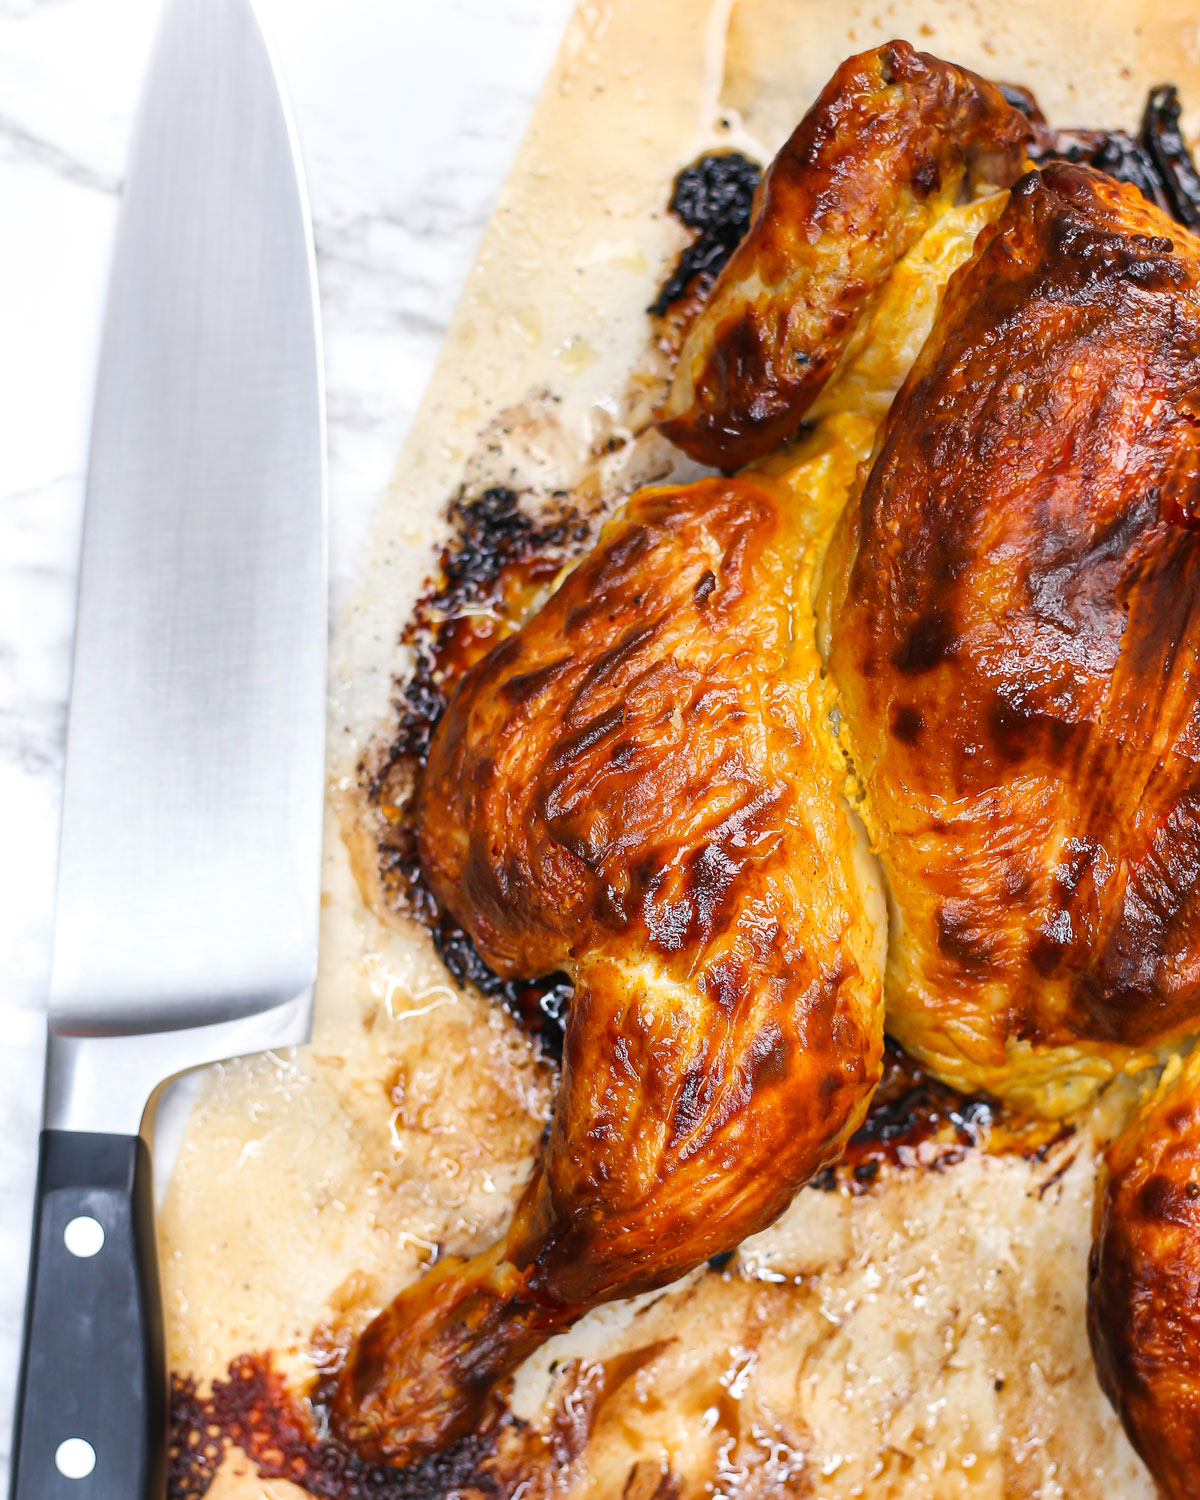 roasted spatchcock chicken on parchment paper with a chef's knife